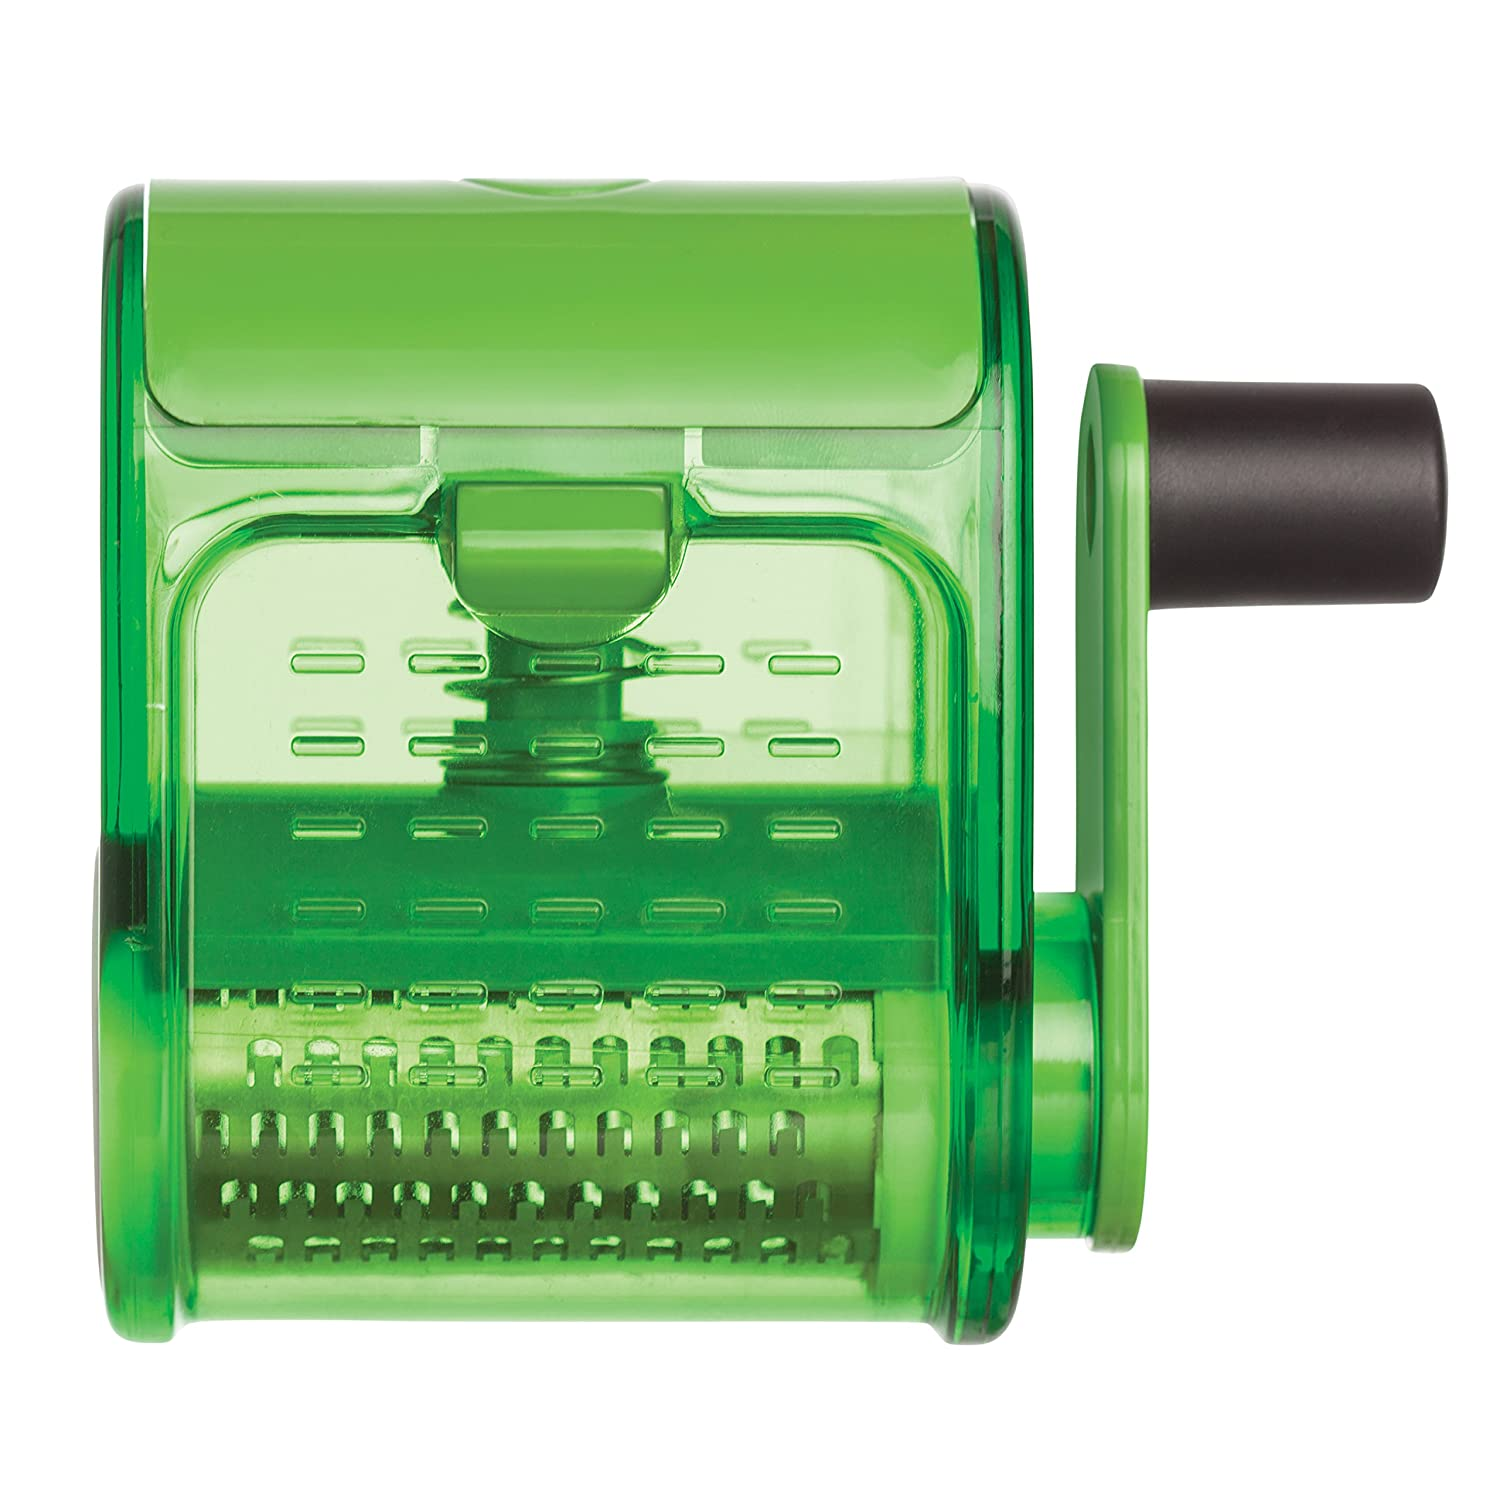 Green Fantes 43785 Rotary Cheese Grater The Italian Market Original Since 1906